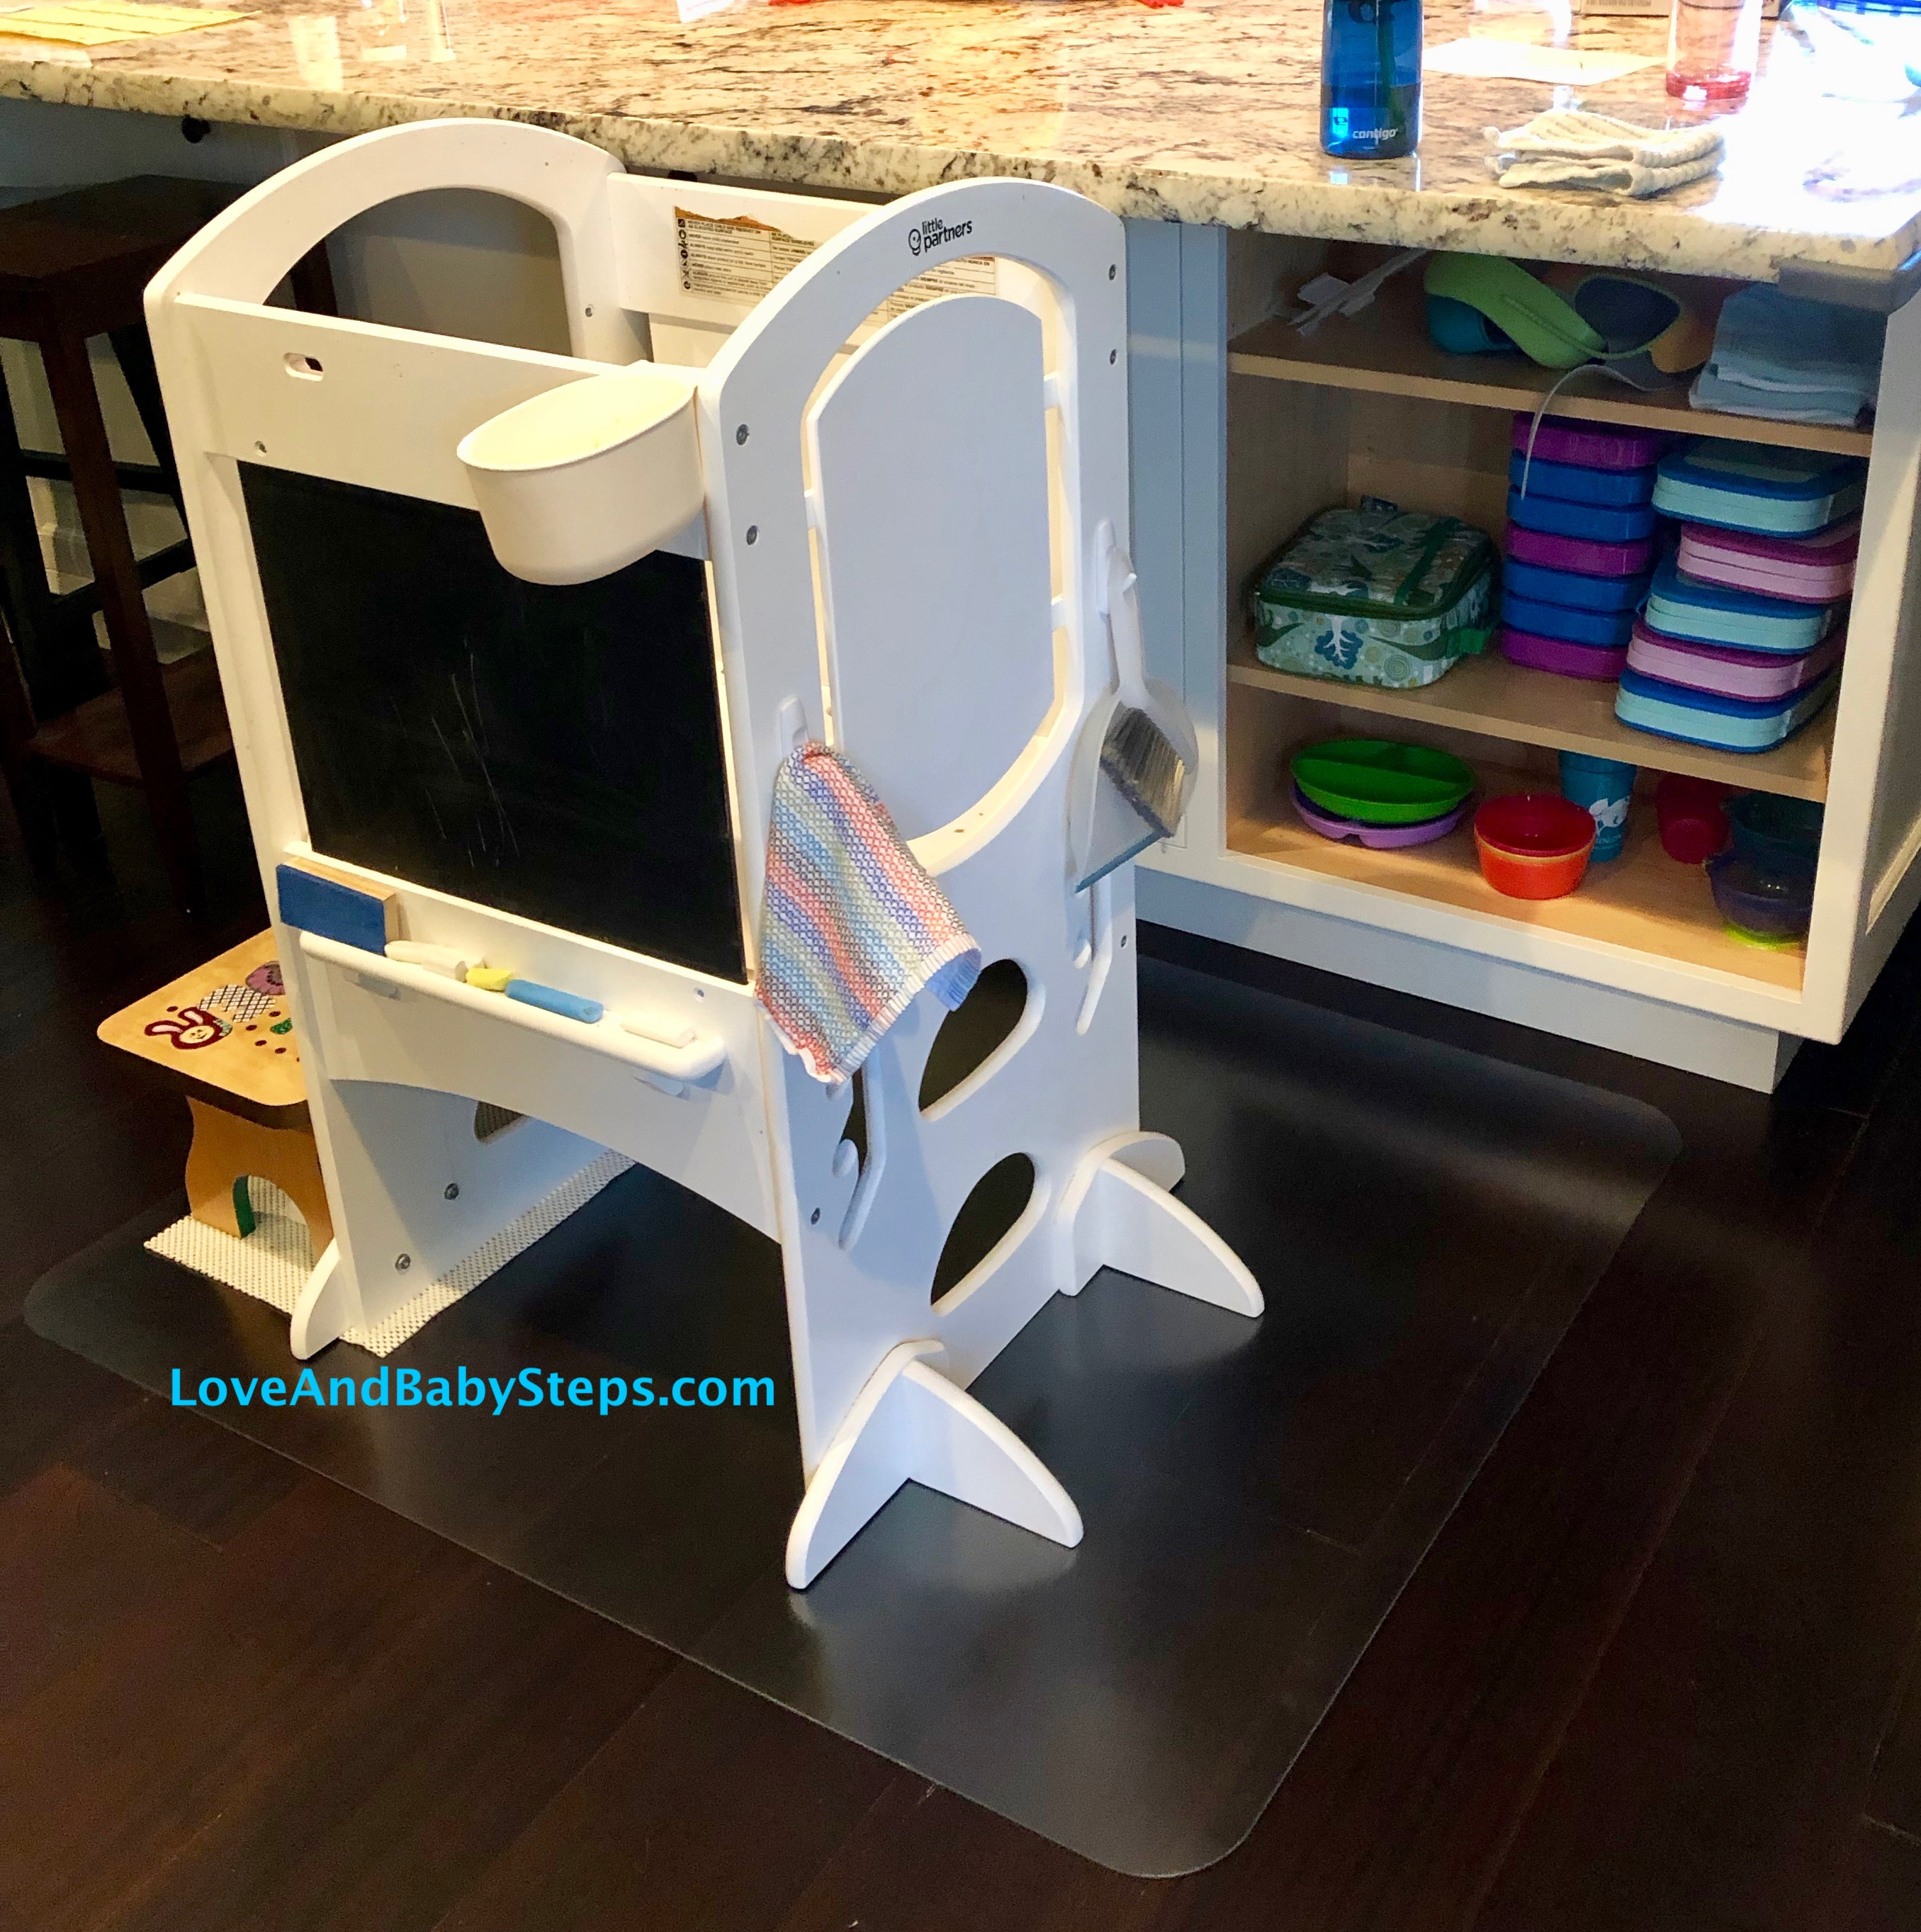 Montessori Friendly Learning Towers And Tips Love And Baby Steps